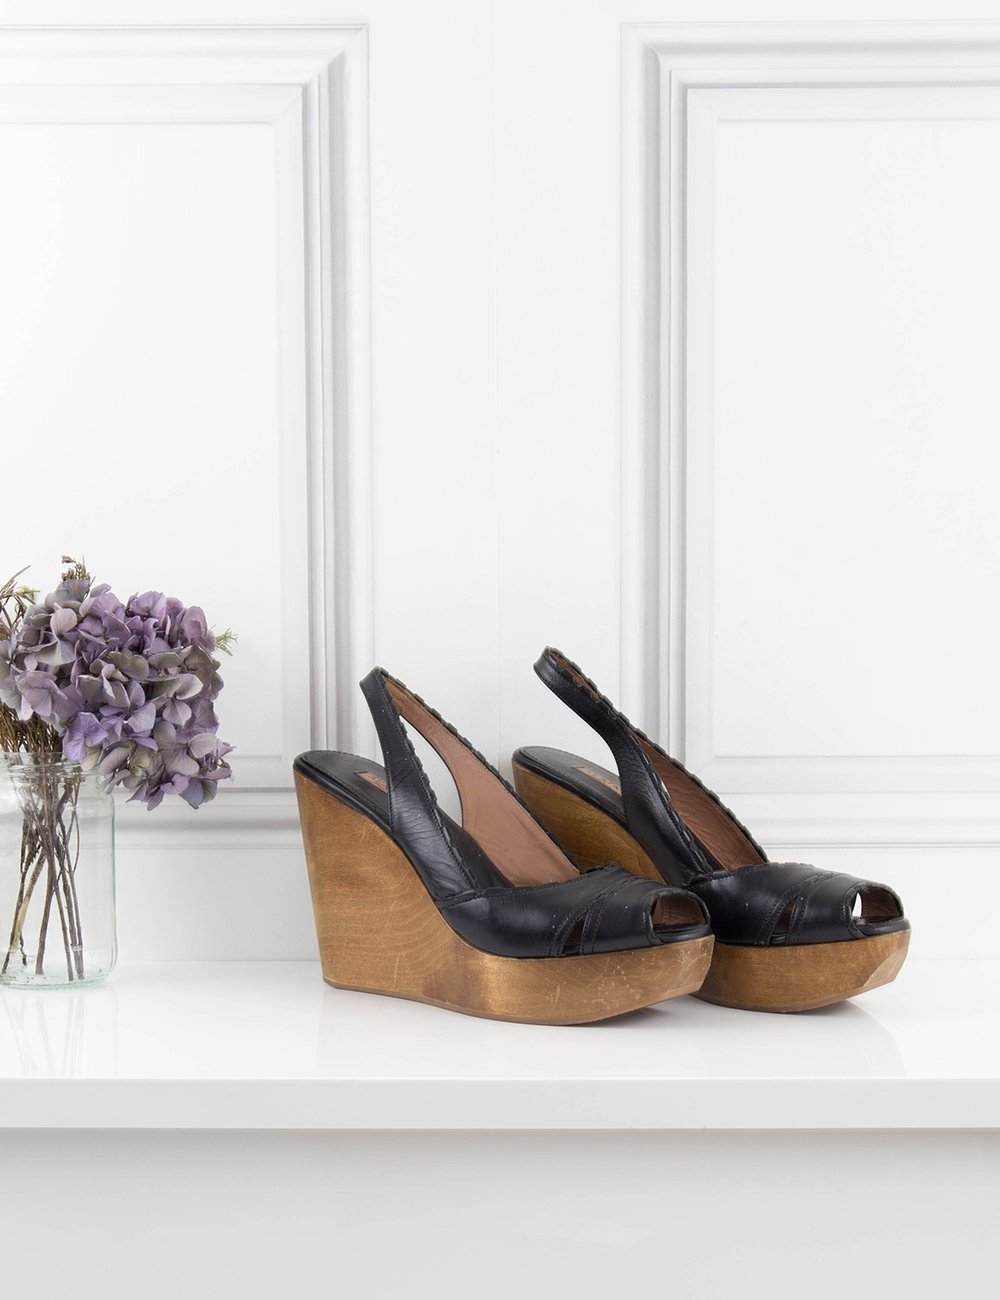 ALAIA SHOES Wedge sandals with wooden heel 7UK- My Wardrobe Mistakes